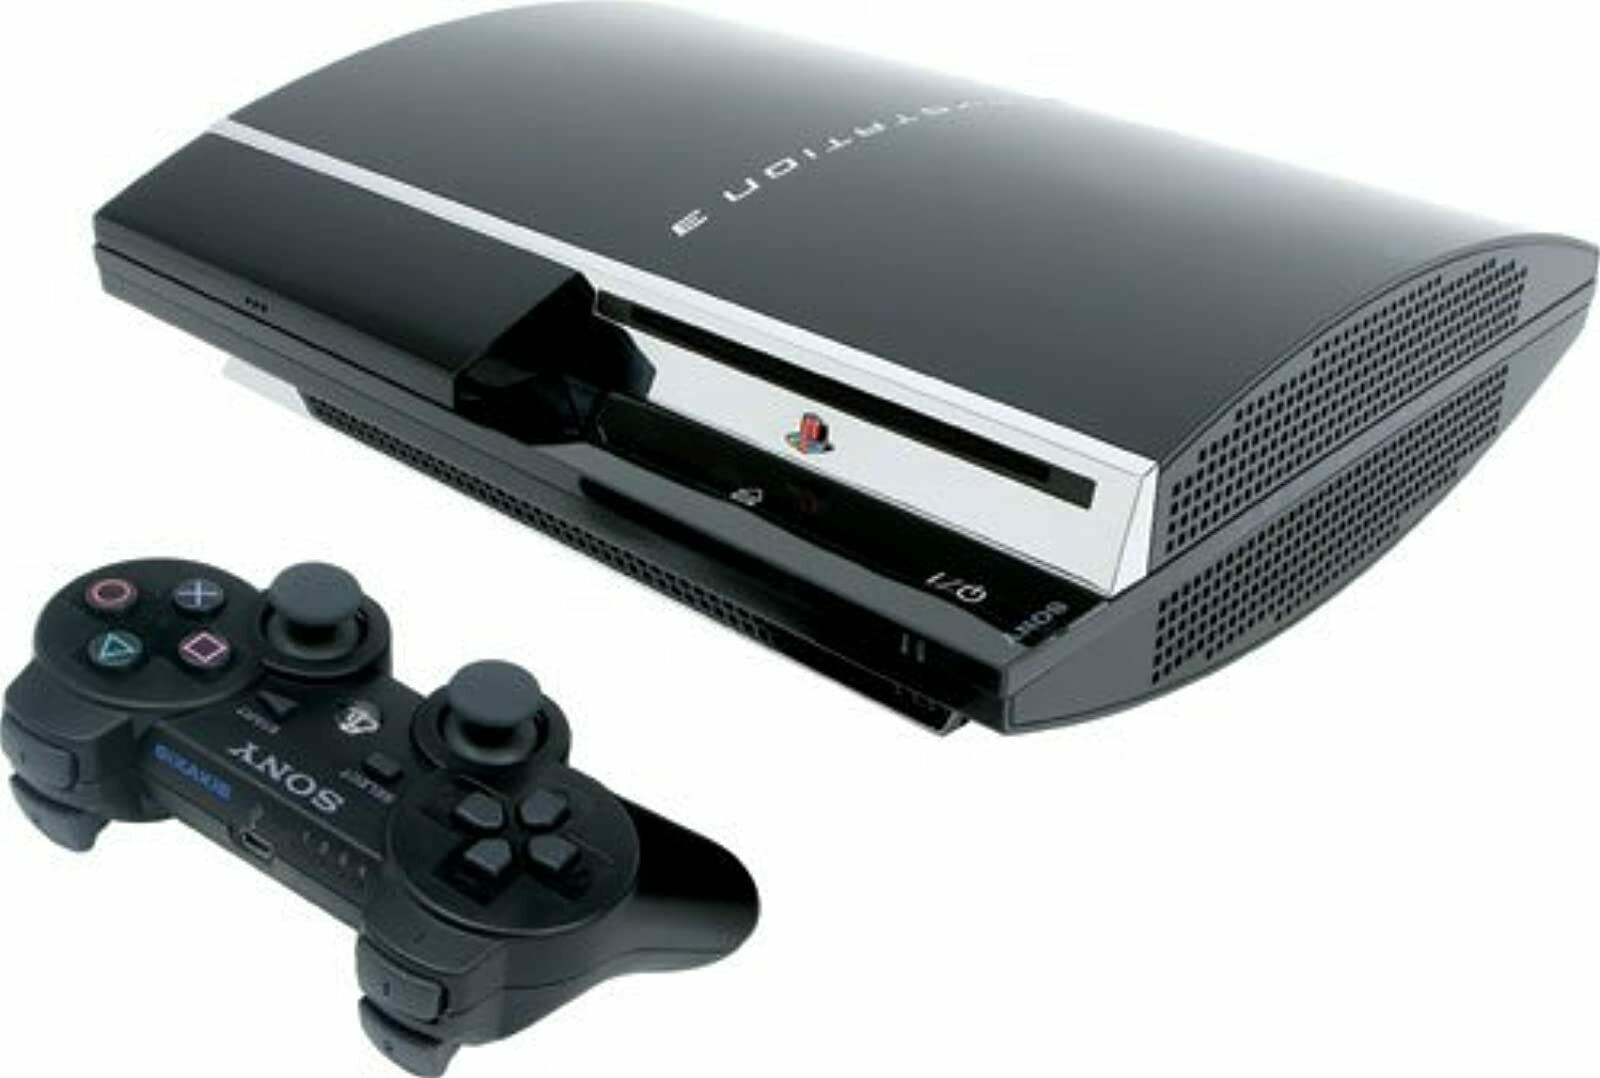 Sony PlayStation 3 80GB Game System Blu-Ray HDMI Console Video Game Systems Vide